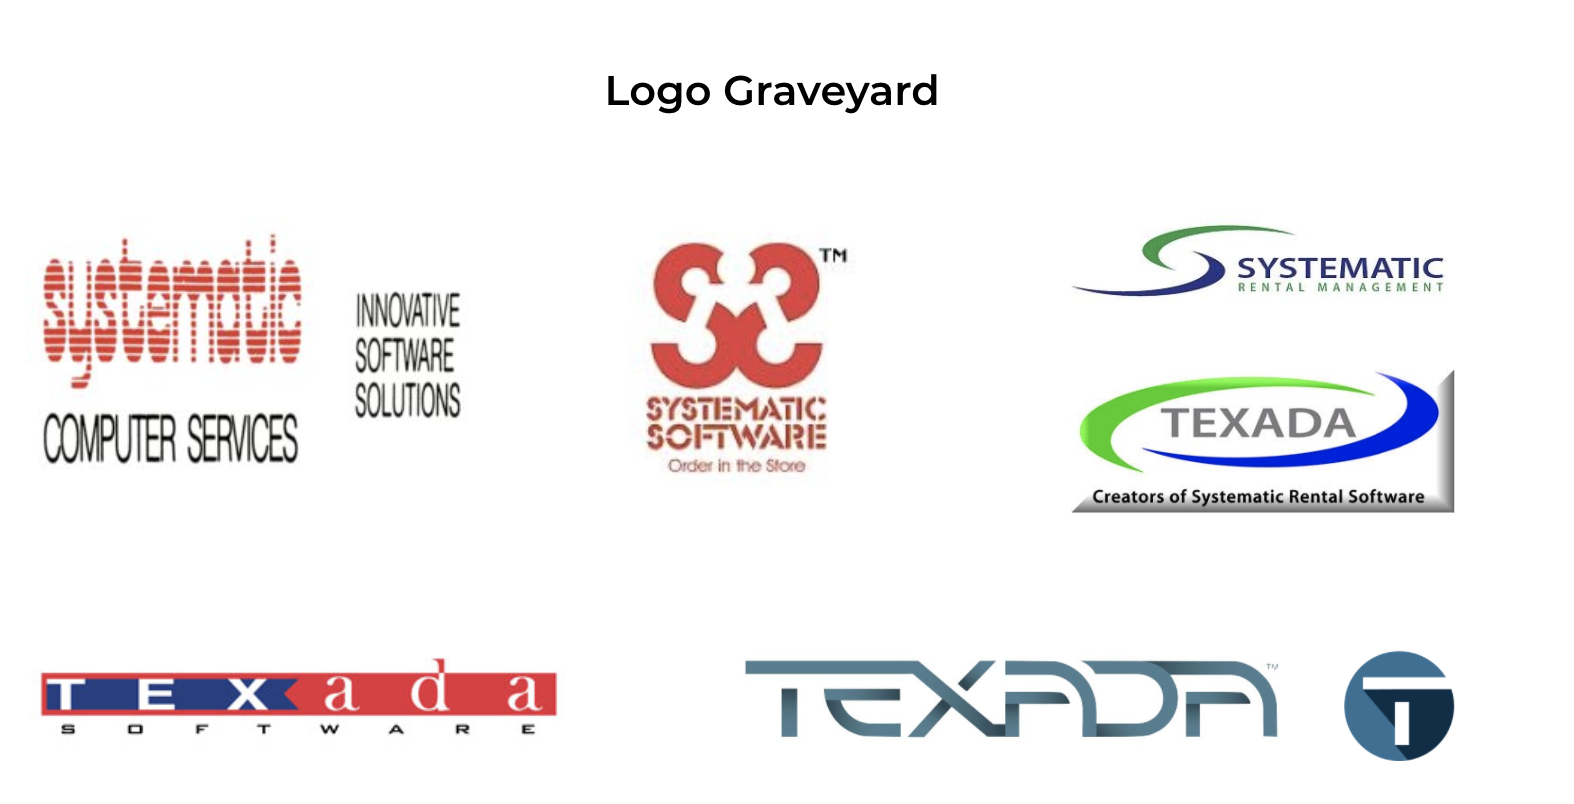 Texada and Systematic Retired Logos